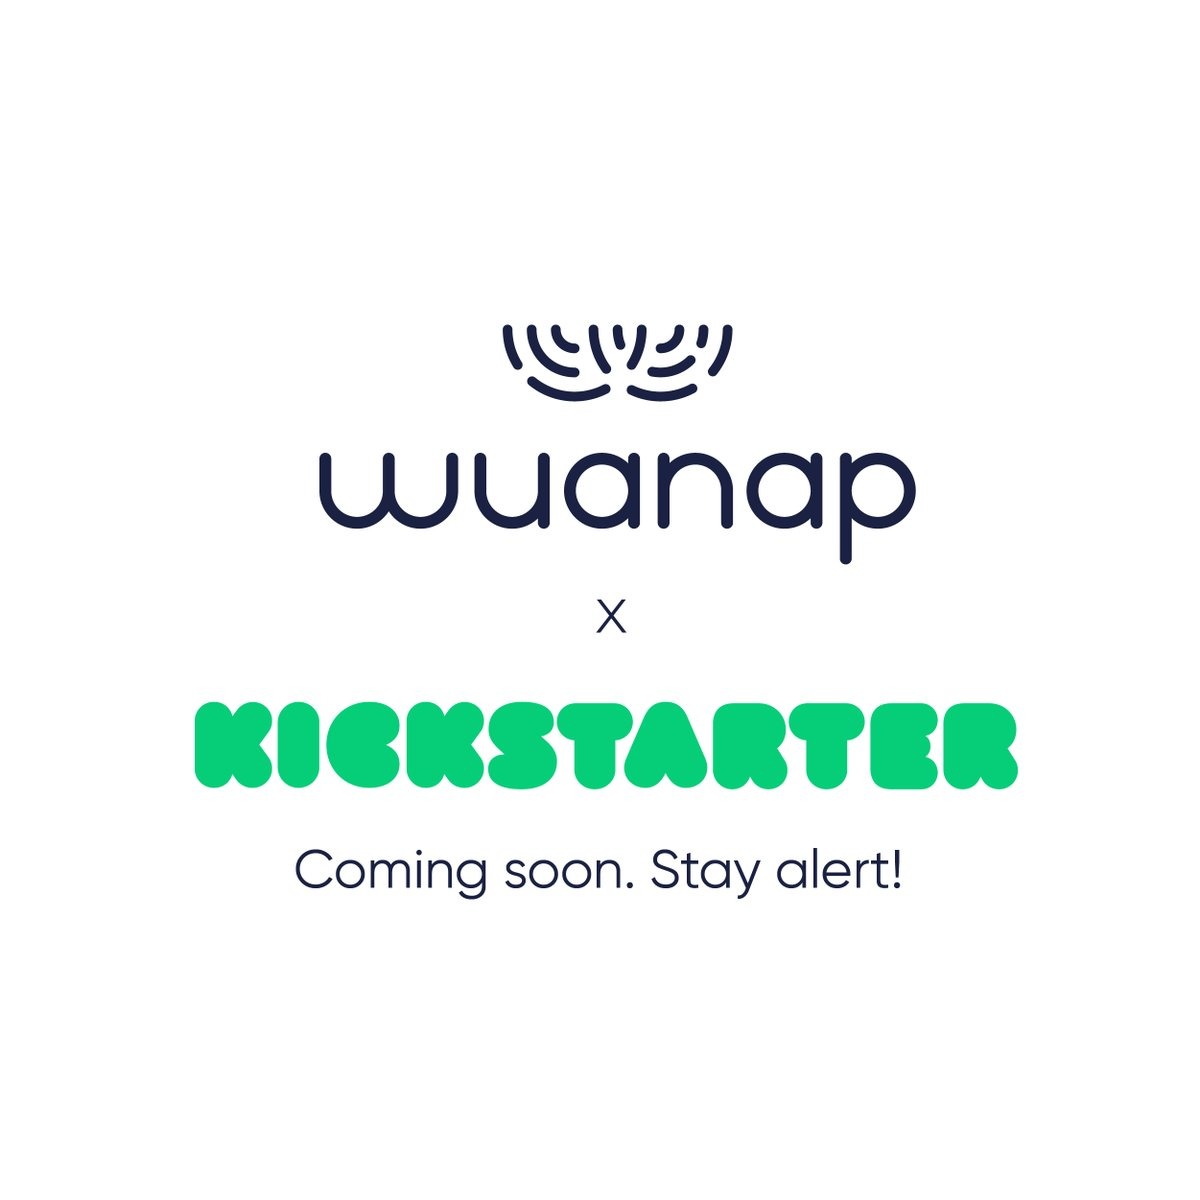 Visit http://ow.ly/feHx50AuwMX to know when it is starting our Kickstarter campaign. We want to change history, but we need your suppor to make it happen. #Enjoywatersafety #SmartLifecollar #Wuanap #Newinvention pic.twitter.com/NUrJrwkMJs